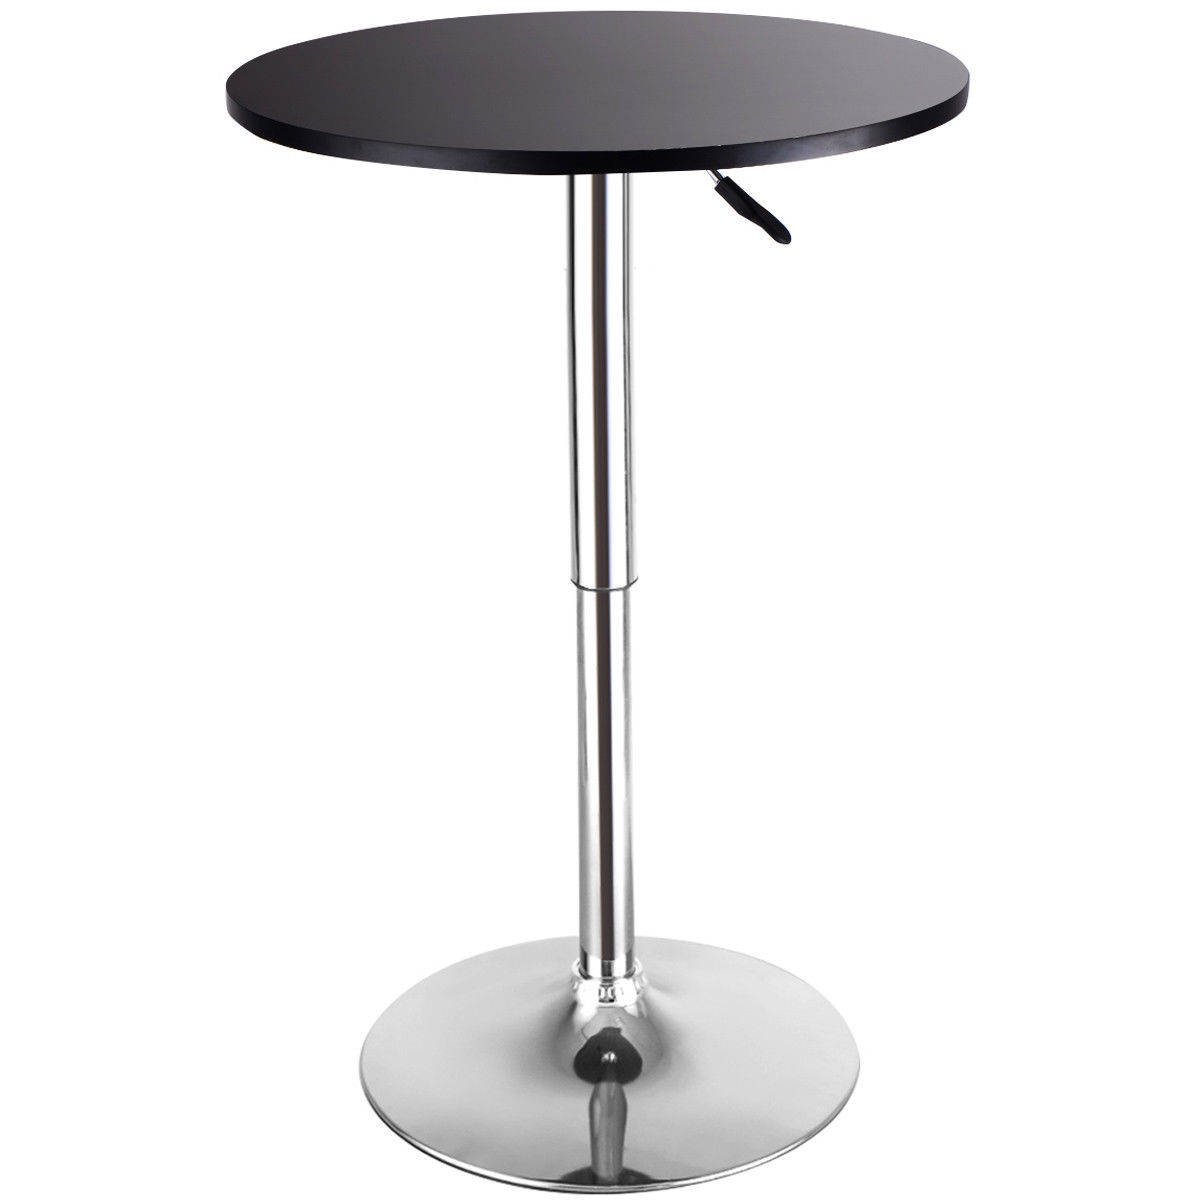 Superieur Costway Modern Round Bar Table Adjustable Bistro Pub Counter Wood Top  Swivel Indoor